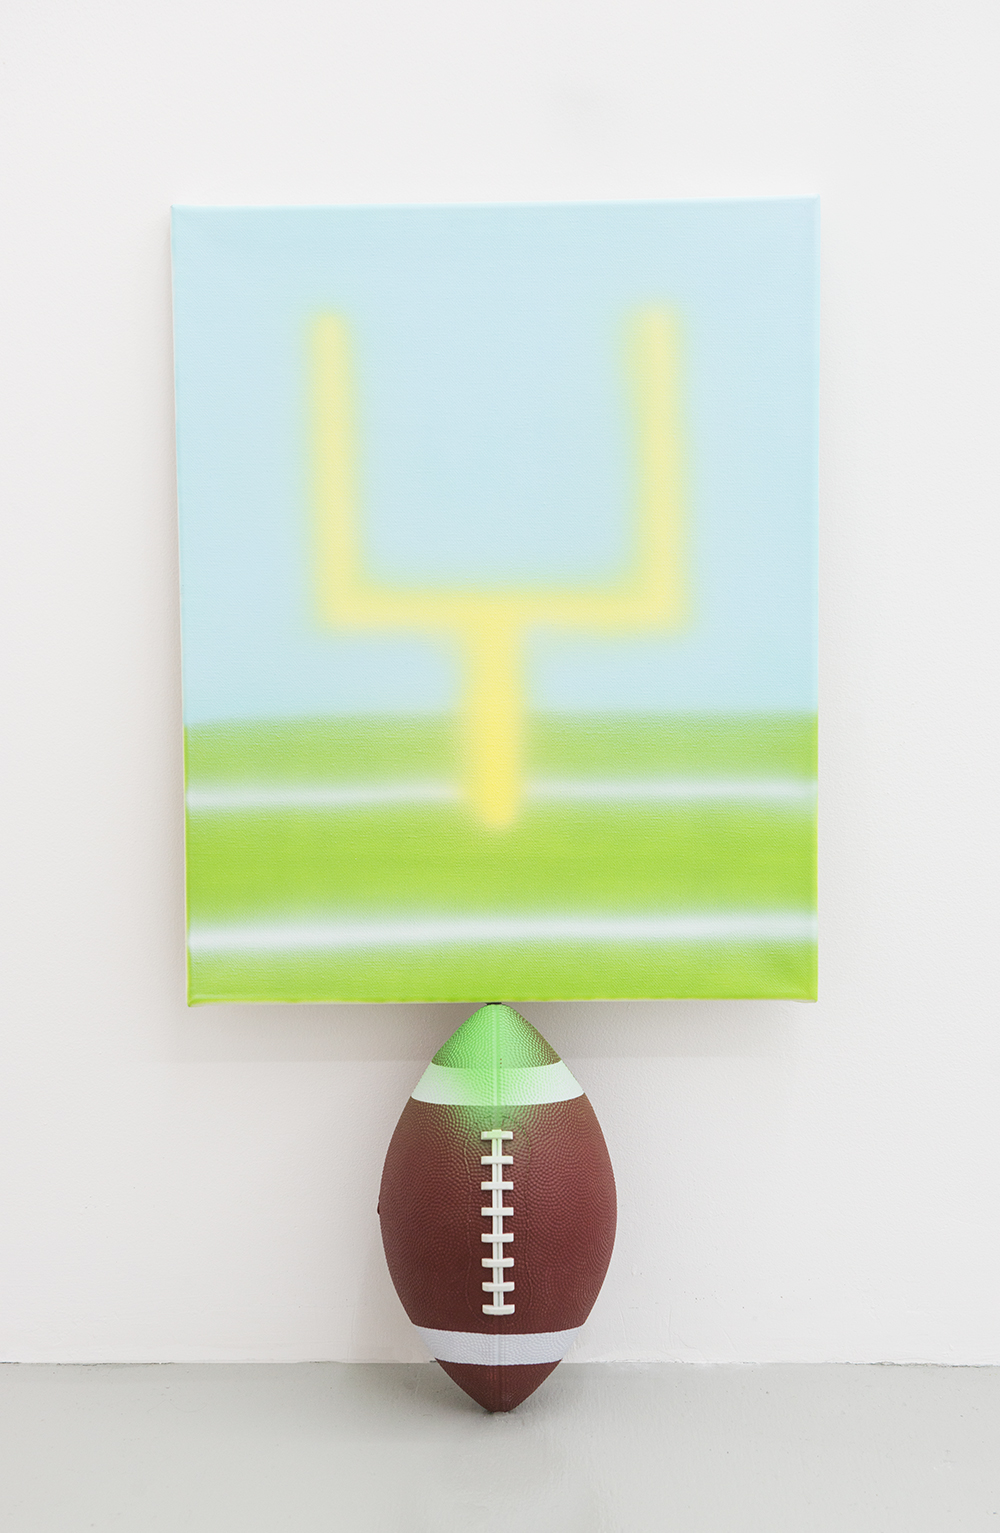 Jonny Paul Gillette goal on football ball, 2015 Acrylic polymer on canvas, football ball